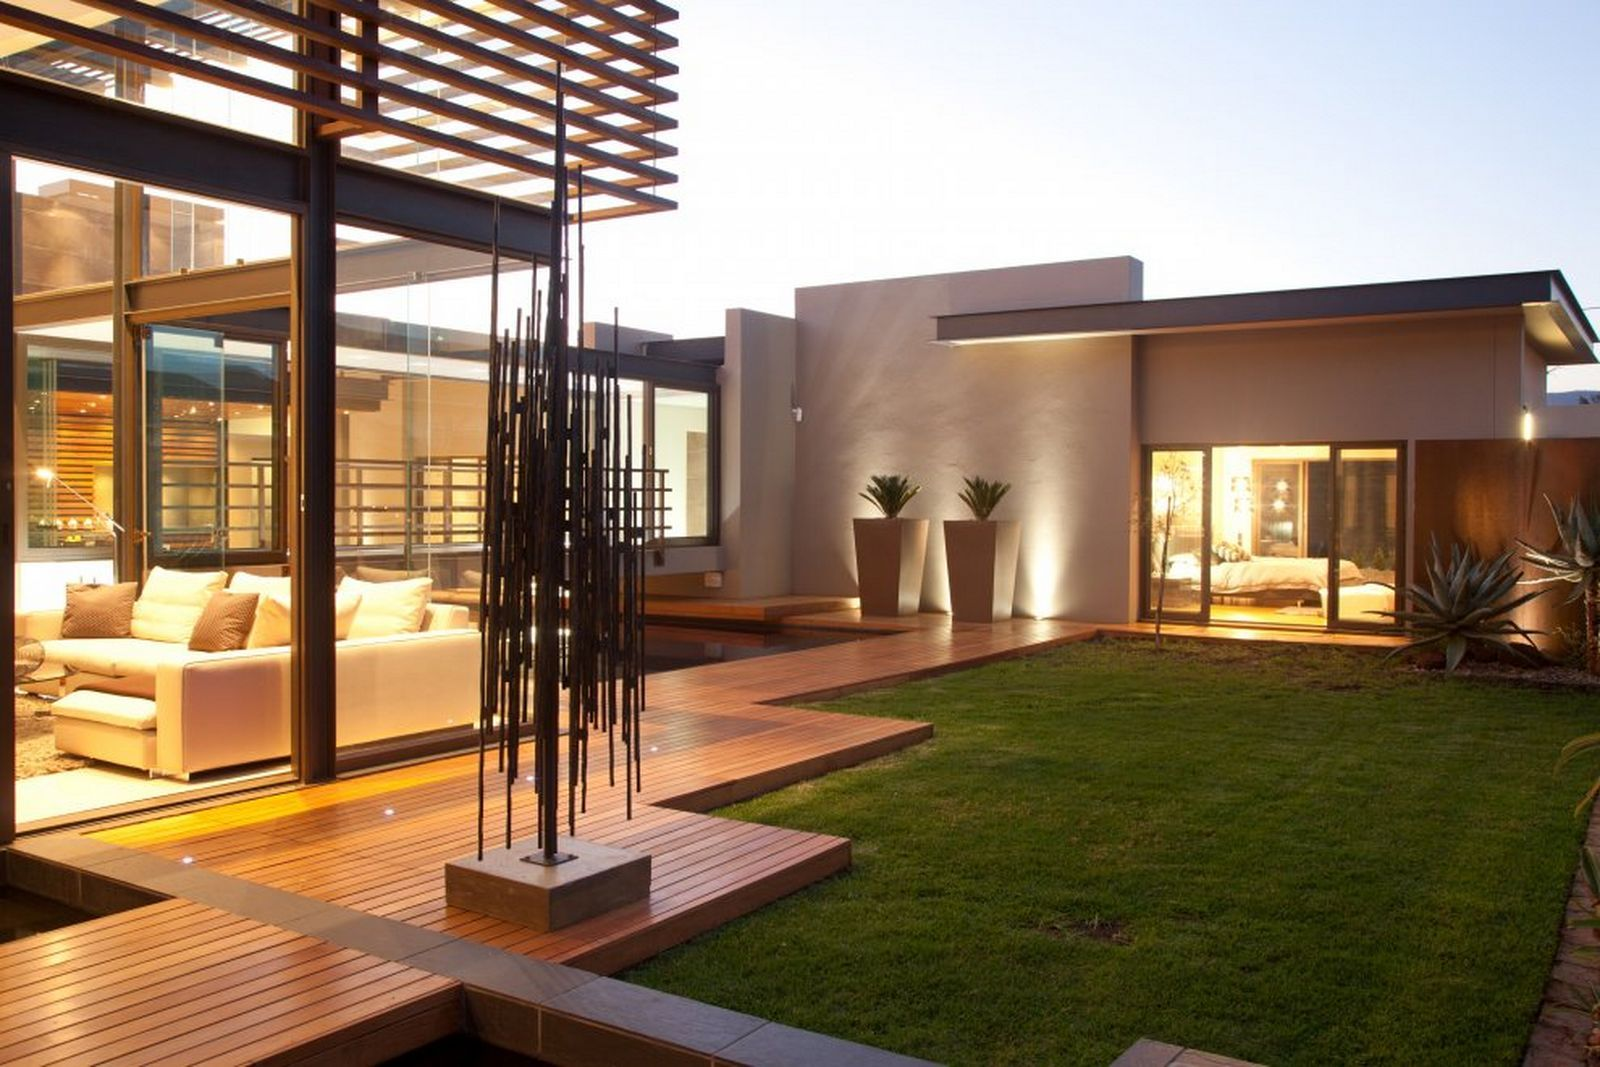 Simple modern house over project ideas dream house modern simple house - House Aboobaker In Limpopo South Africa By Nico Van Der Meulen Architects